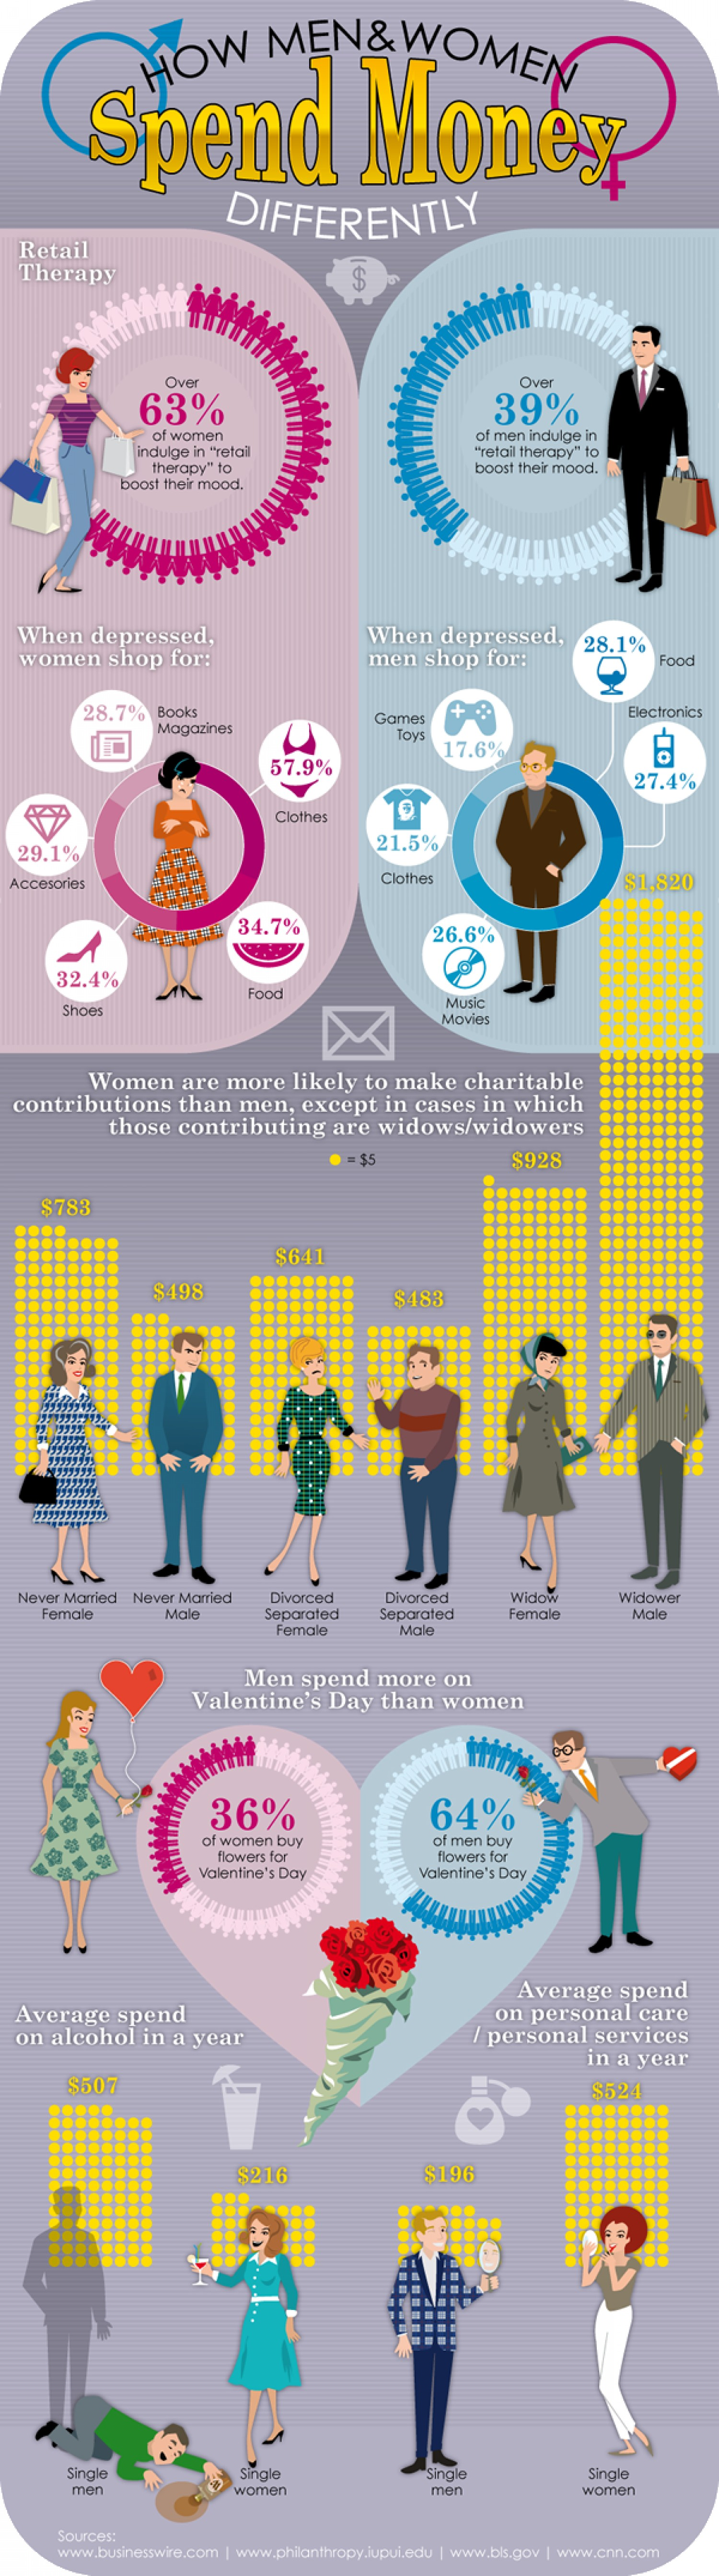 11. How men and women spend money differently